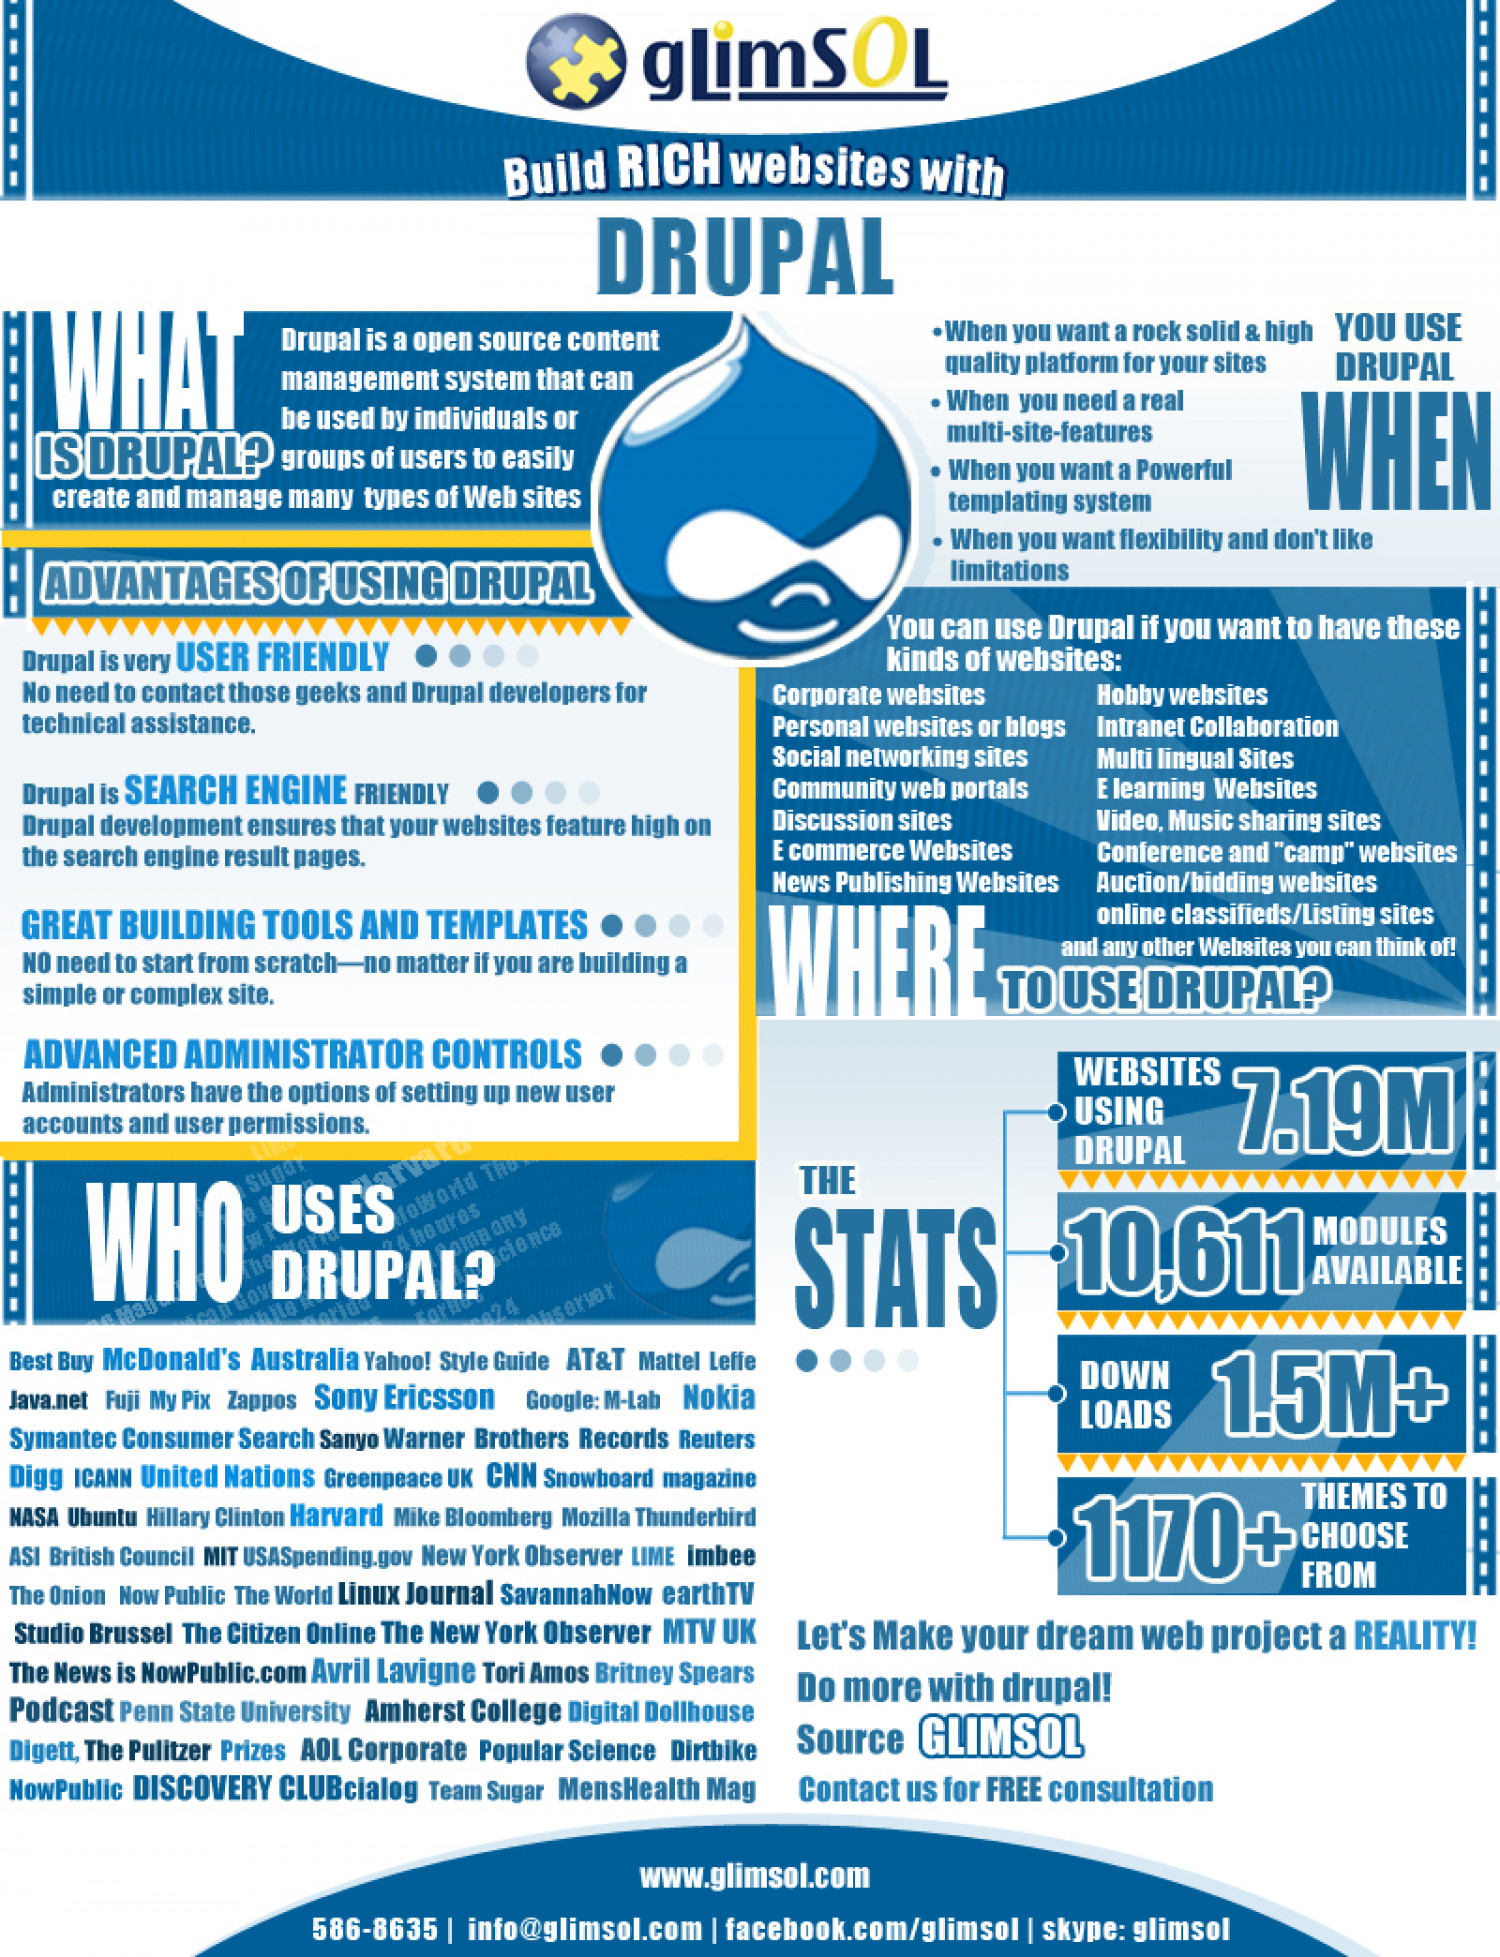 Glimsol offers the power of Drupal Infographic